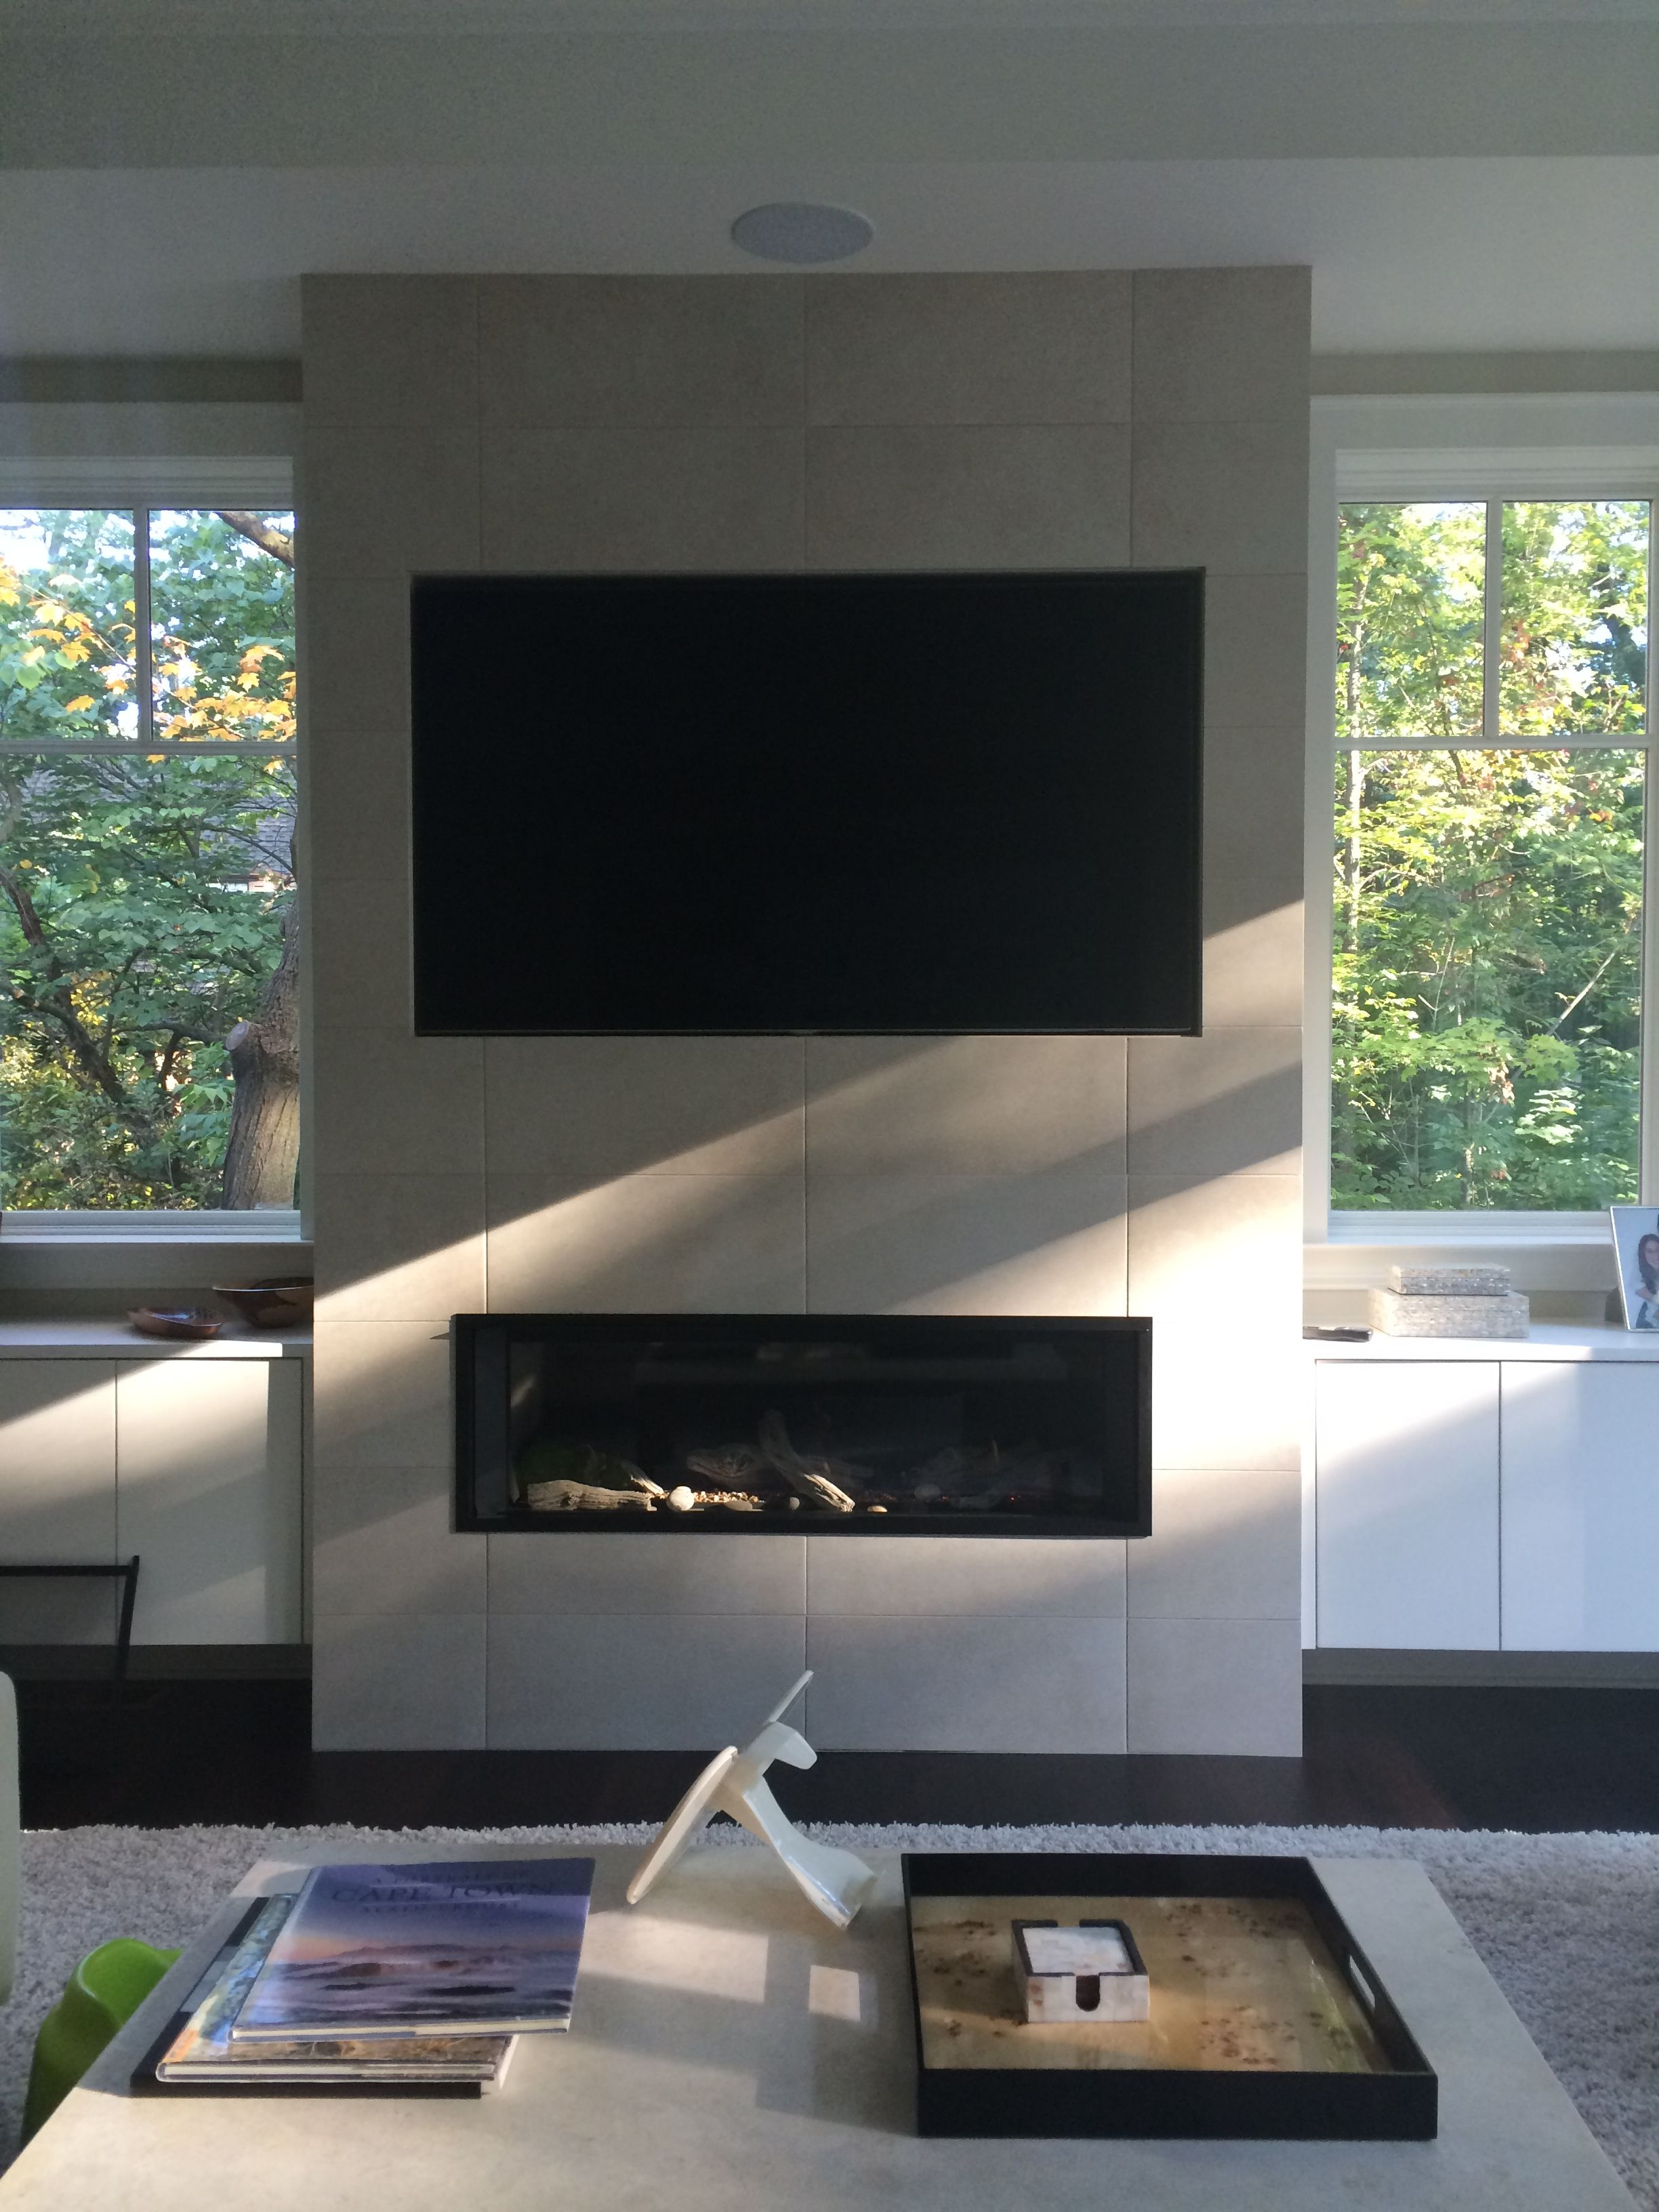 Valor L2 1700 Linear Direct Vent Fireplace. Installed on ...